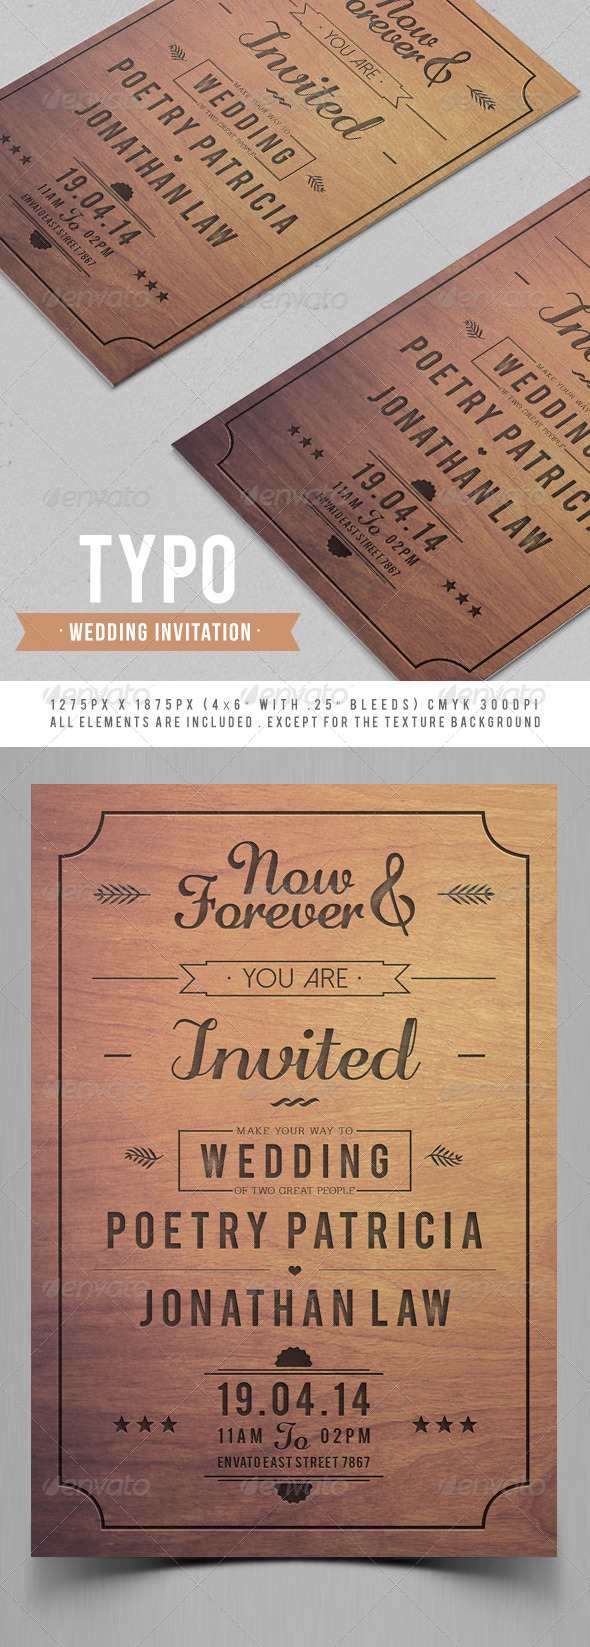 Typo Wedding Invitation - Weddings Cards & Invites